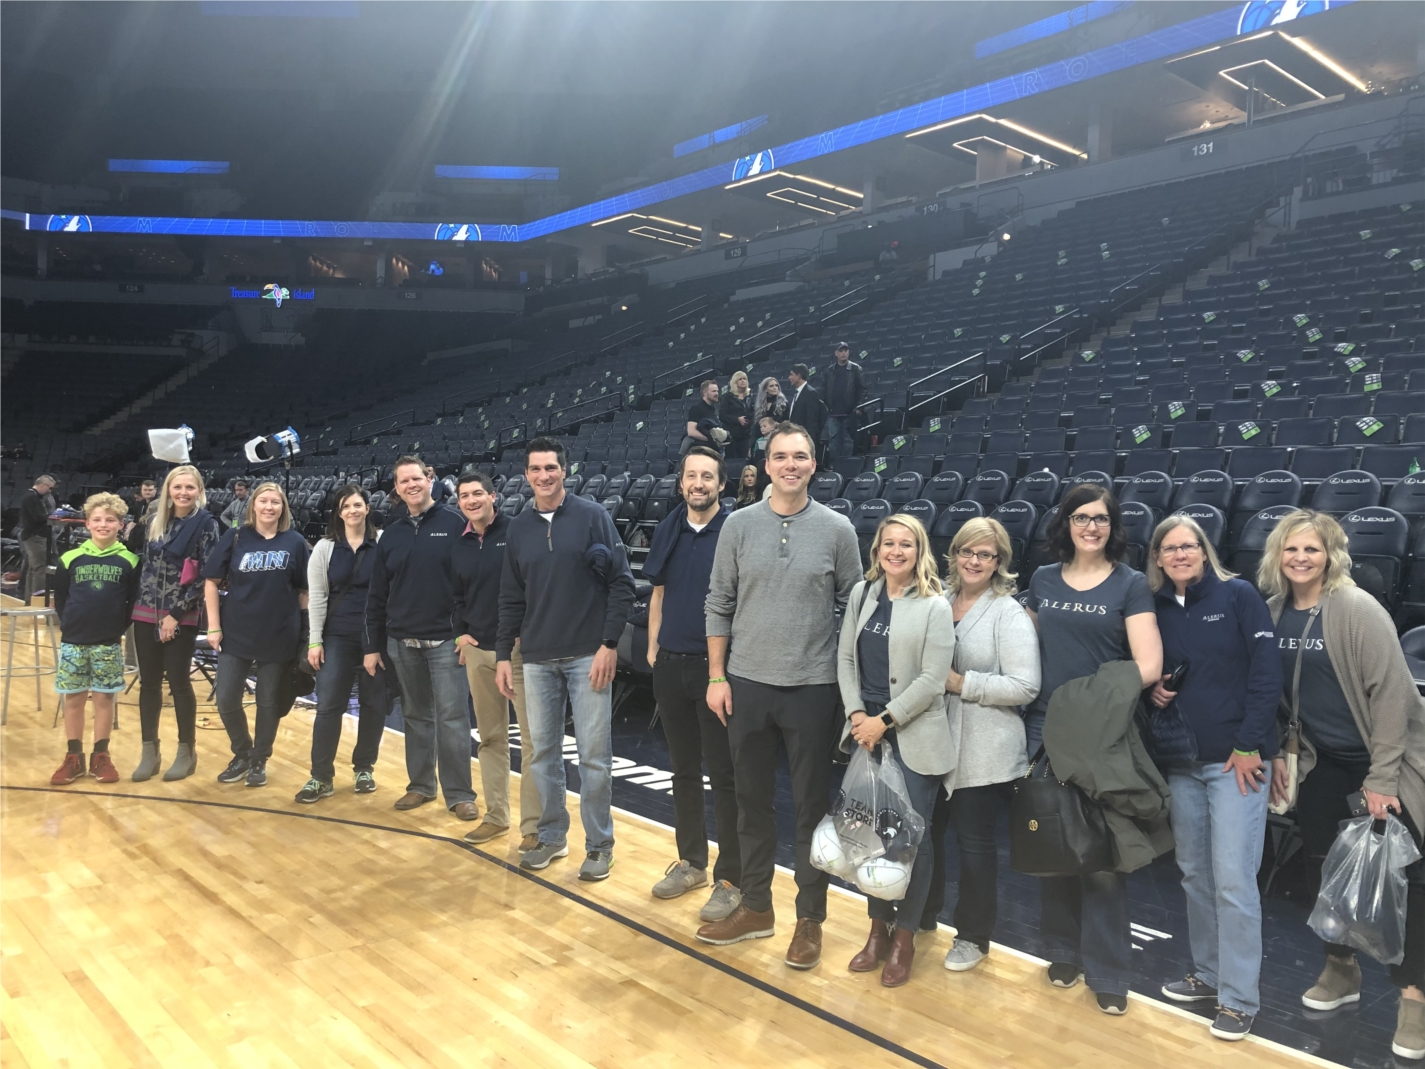 Alerus employees had fun throwing free throws after a Minnesota Timberwolves game.